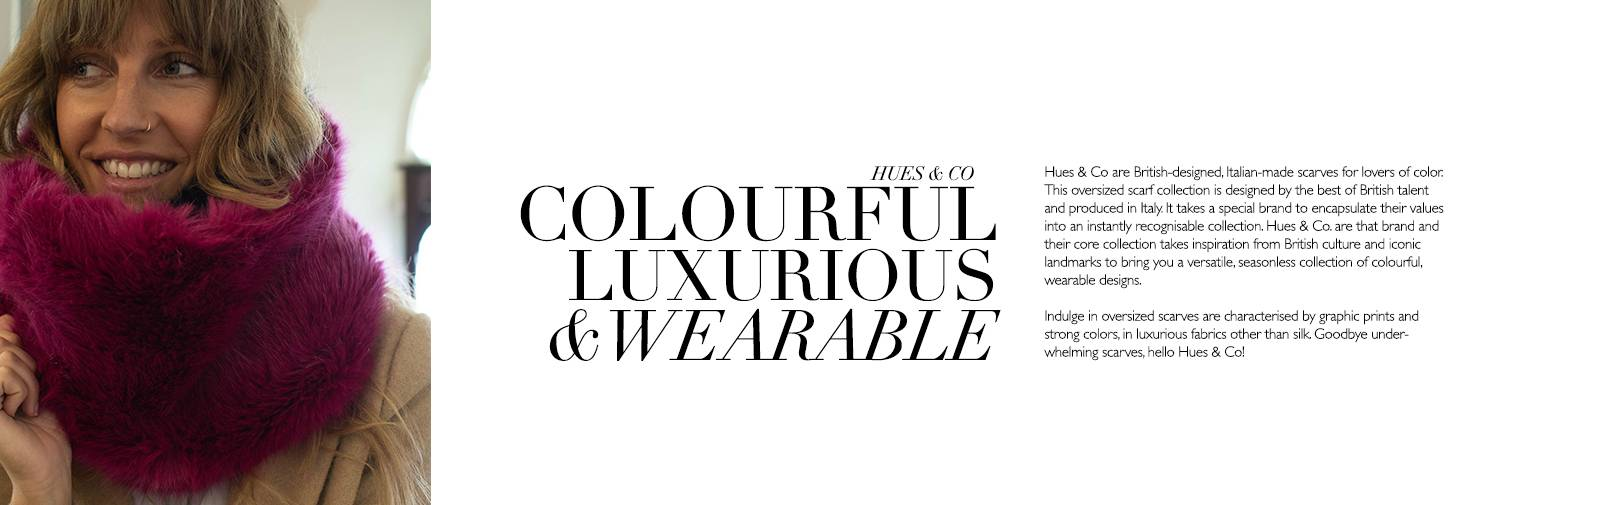 HUES & CO. - COLOURFUL LUXURIOUS & WEARABLE - Hues & Co are British designed, Italian-made scarves for lovers of colour. This oversized scarf collection is designed by the best of British talent and produced in Italy. It takes a special brand to encapsulate their values into an instantly recognisable collection. Hues & Co. are that brand and their core collection takes inspiration from British culture and iconic landmarks to bring a versatile, seasonless collection of colourful wearable designs.  Indulge in oversized scarves are characterised by graphic prints and strong colours, in luxurious fabrics other than silk. Goodbye underwhelmed scarves, hello Hues & Co.!